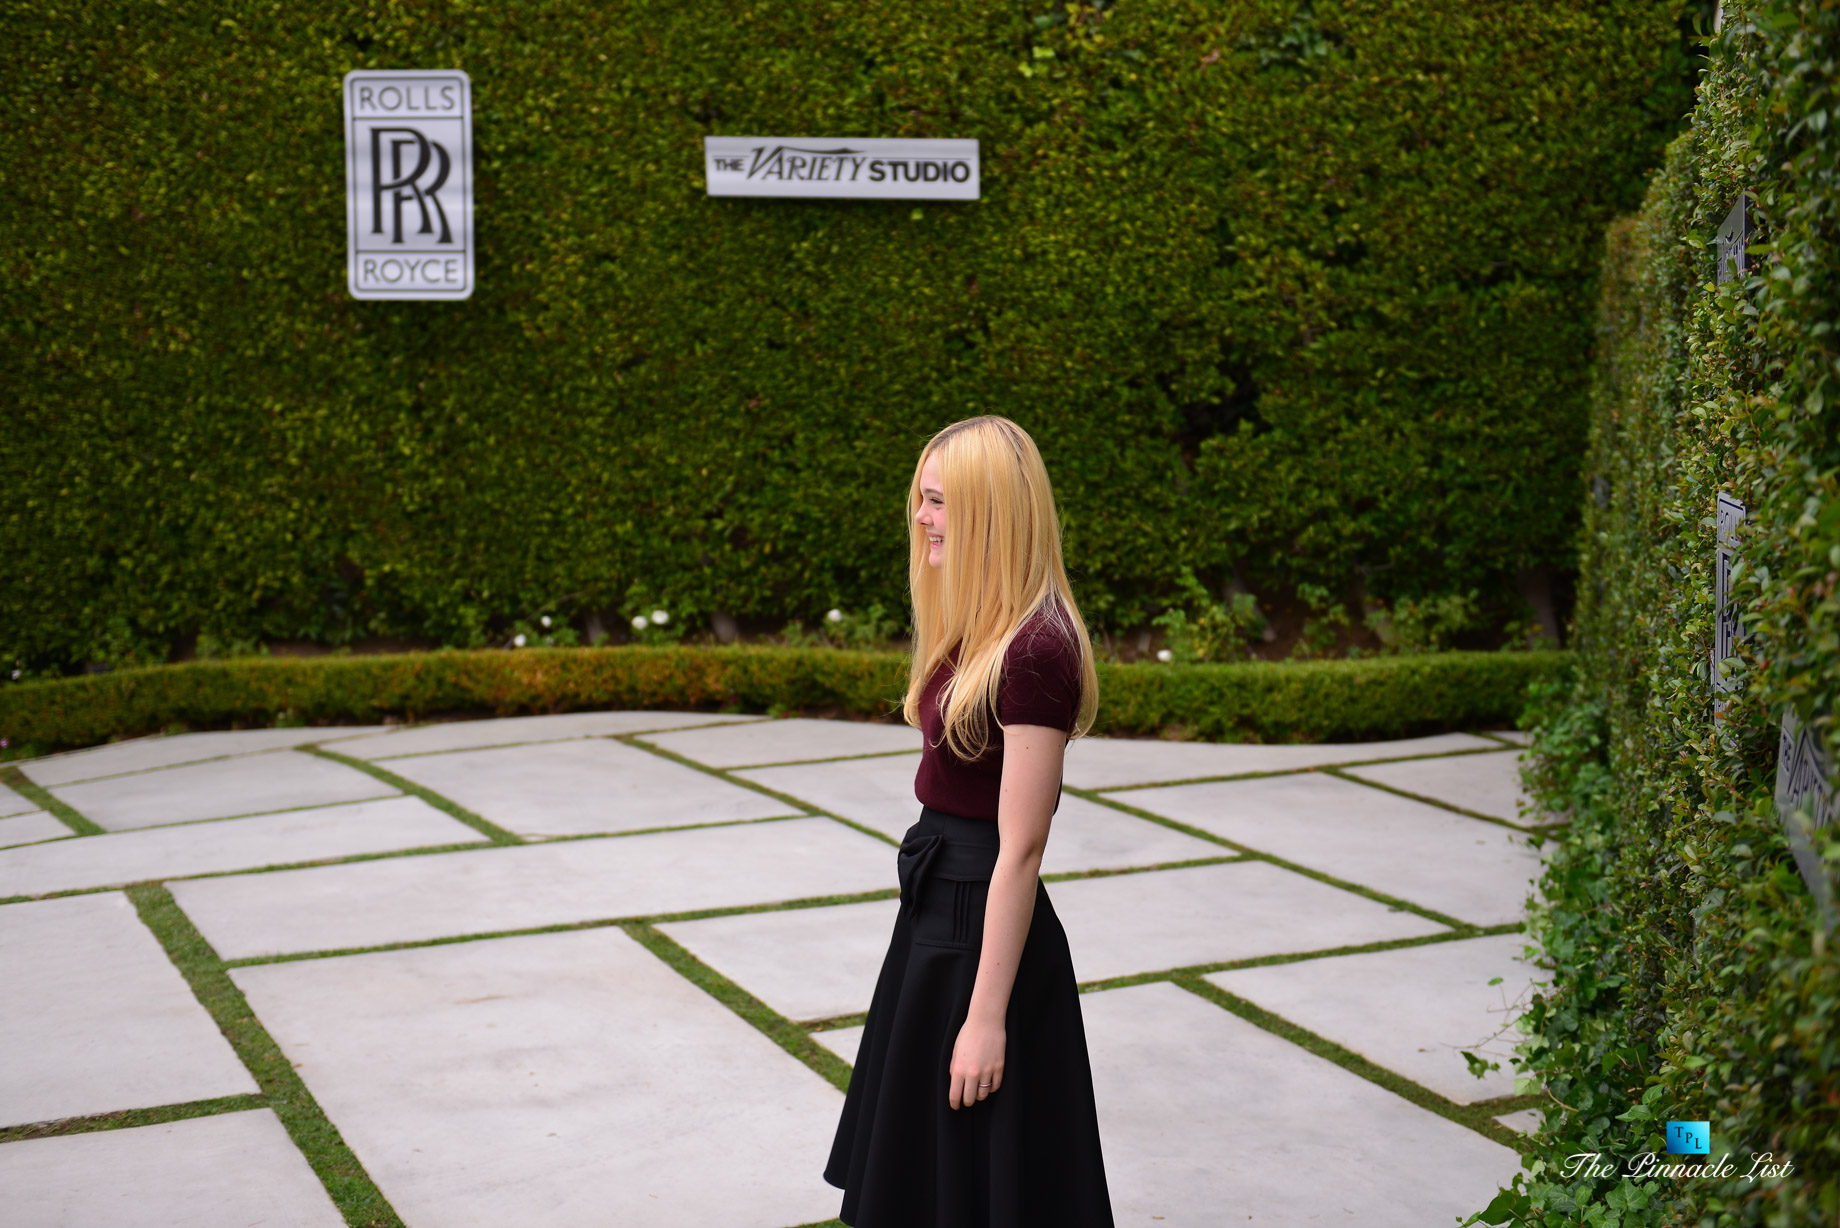 Elle Fanning – Rolls-Royce Hosts The Variety Studio Event in Beverly Hills, California